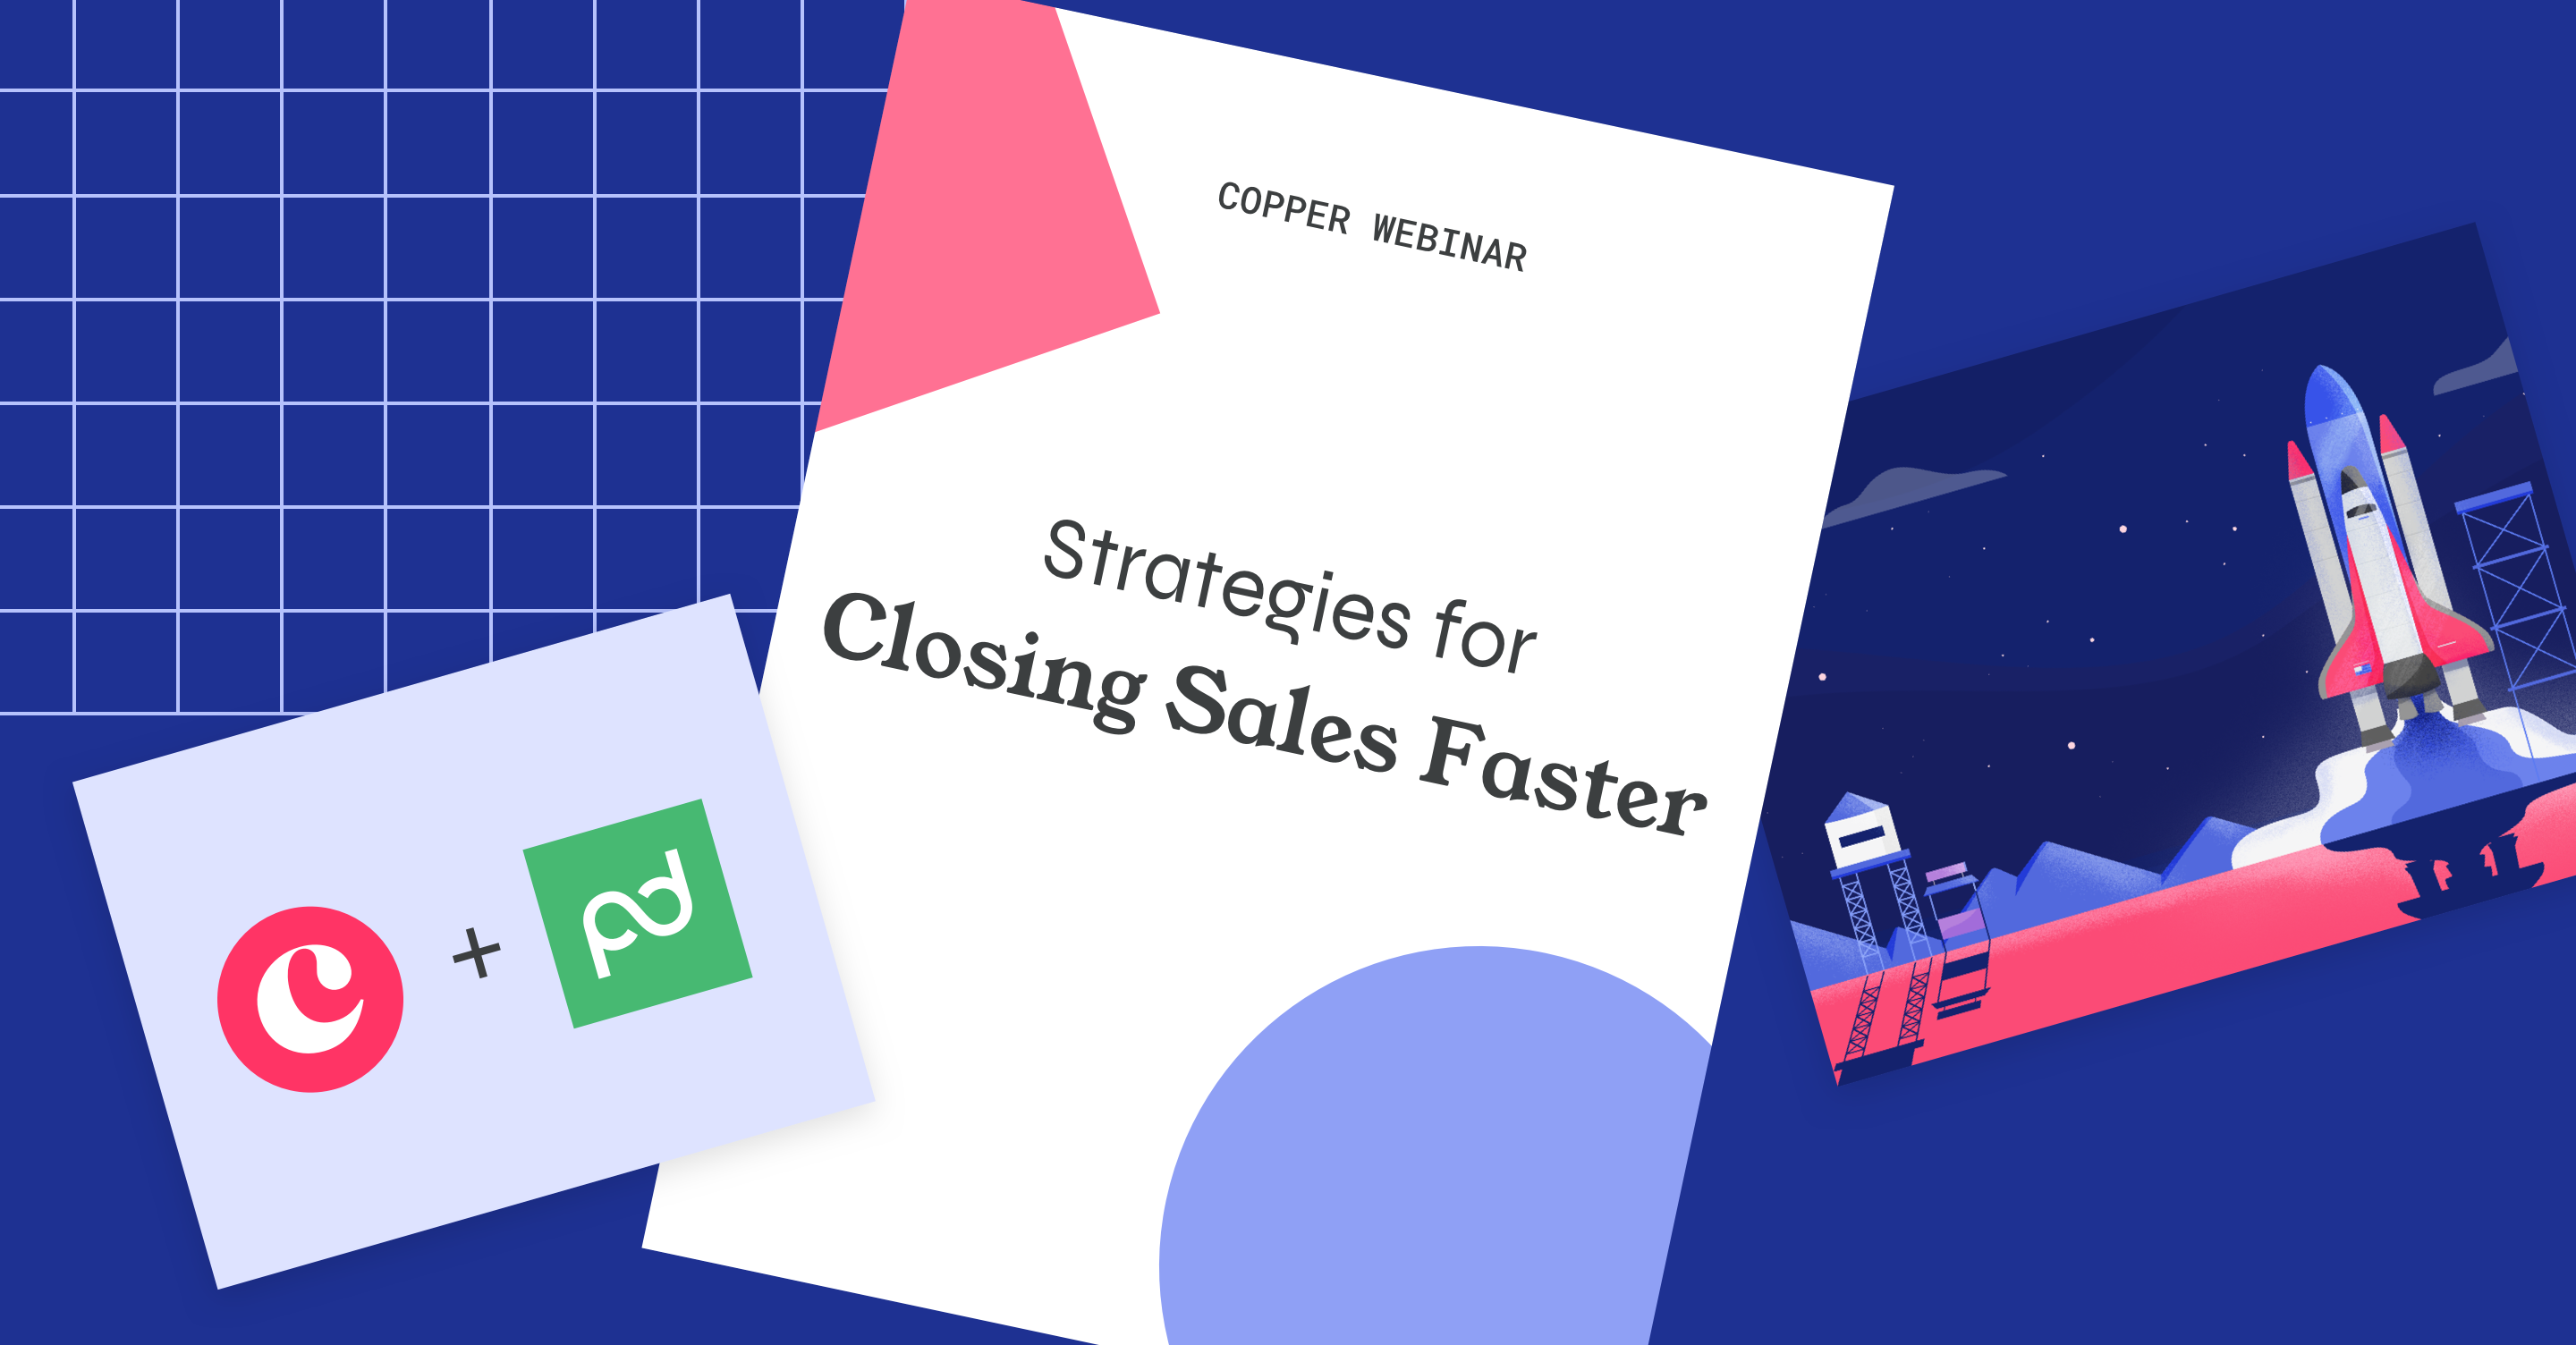 Strategies for Closing Sales Faster